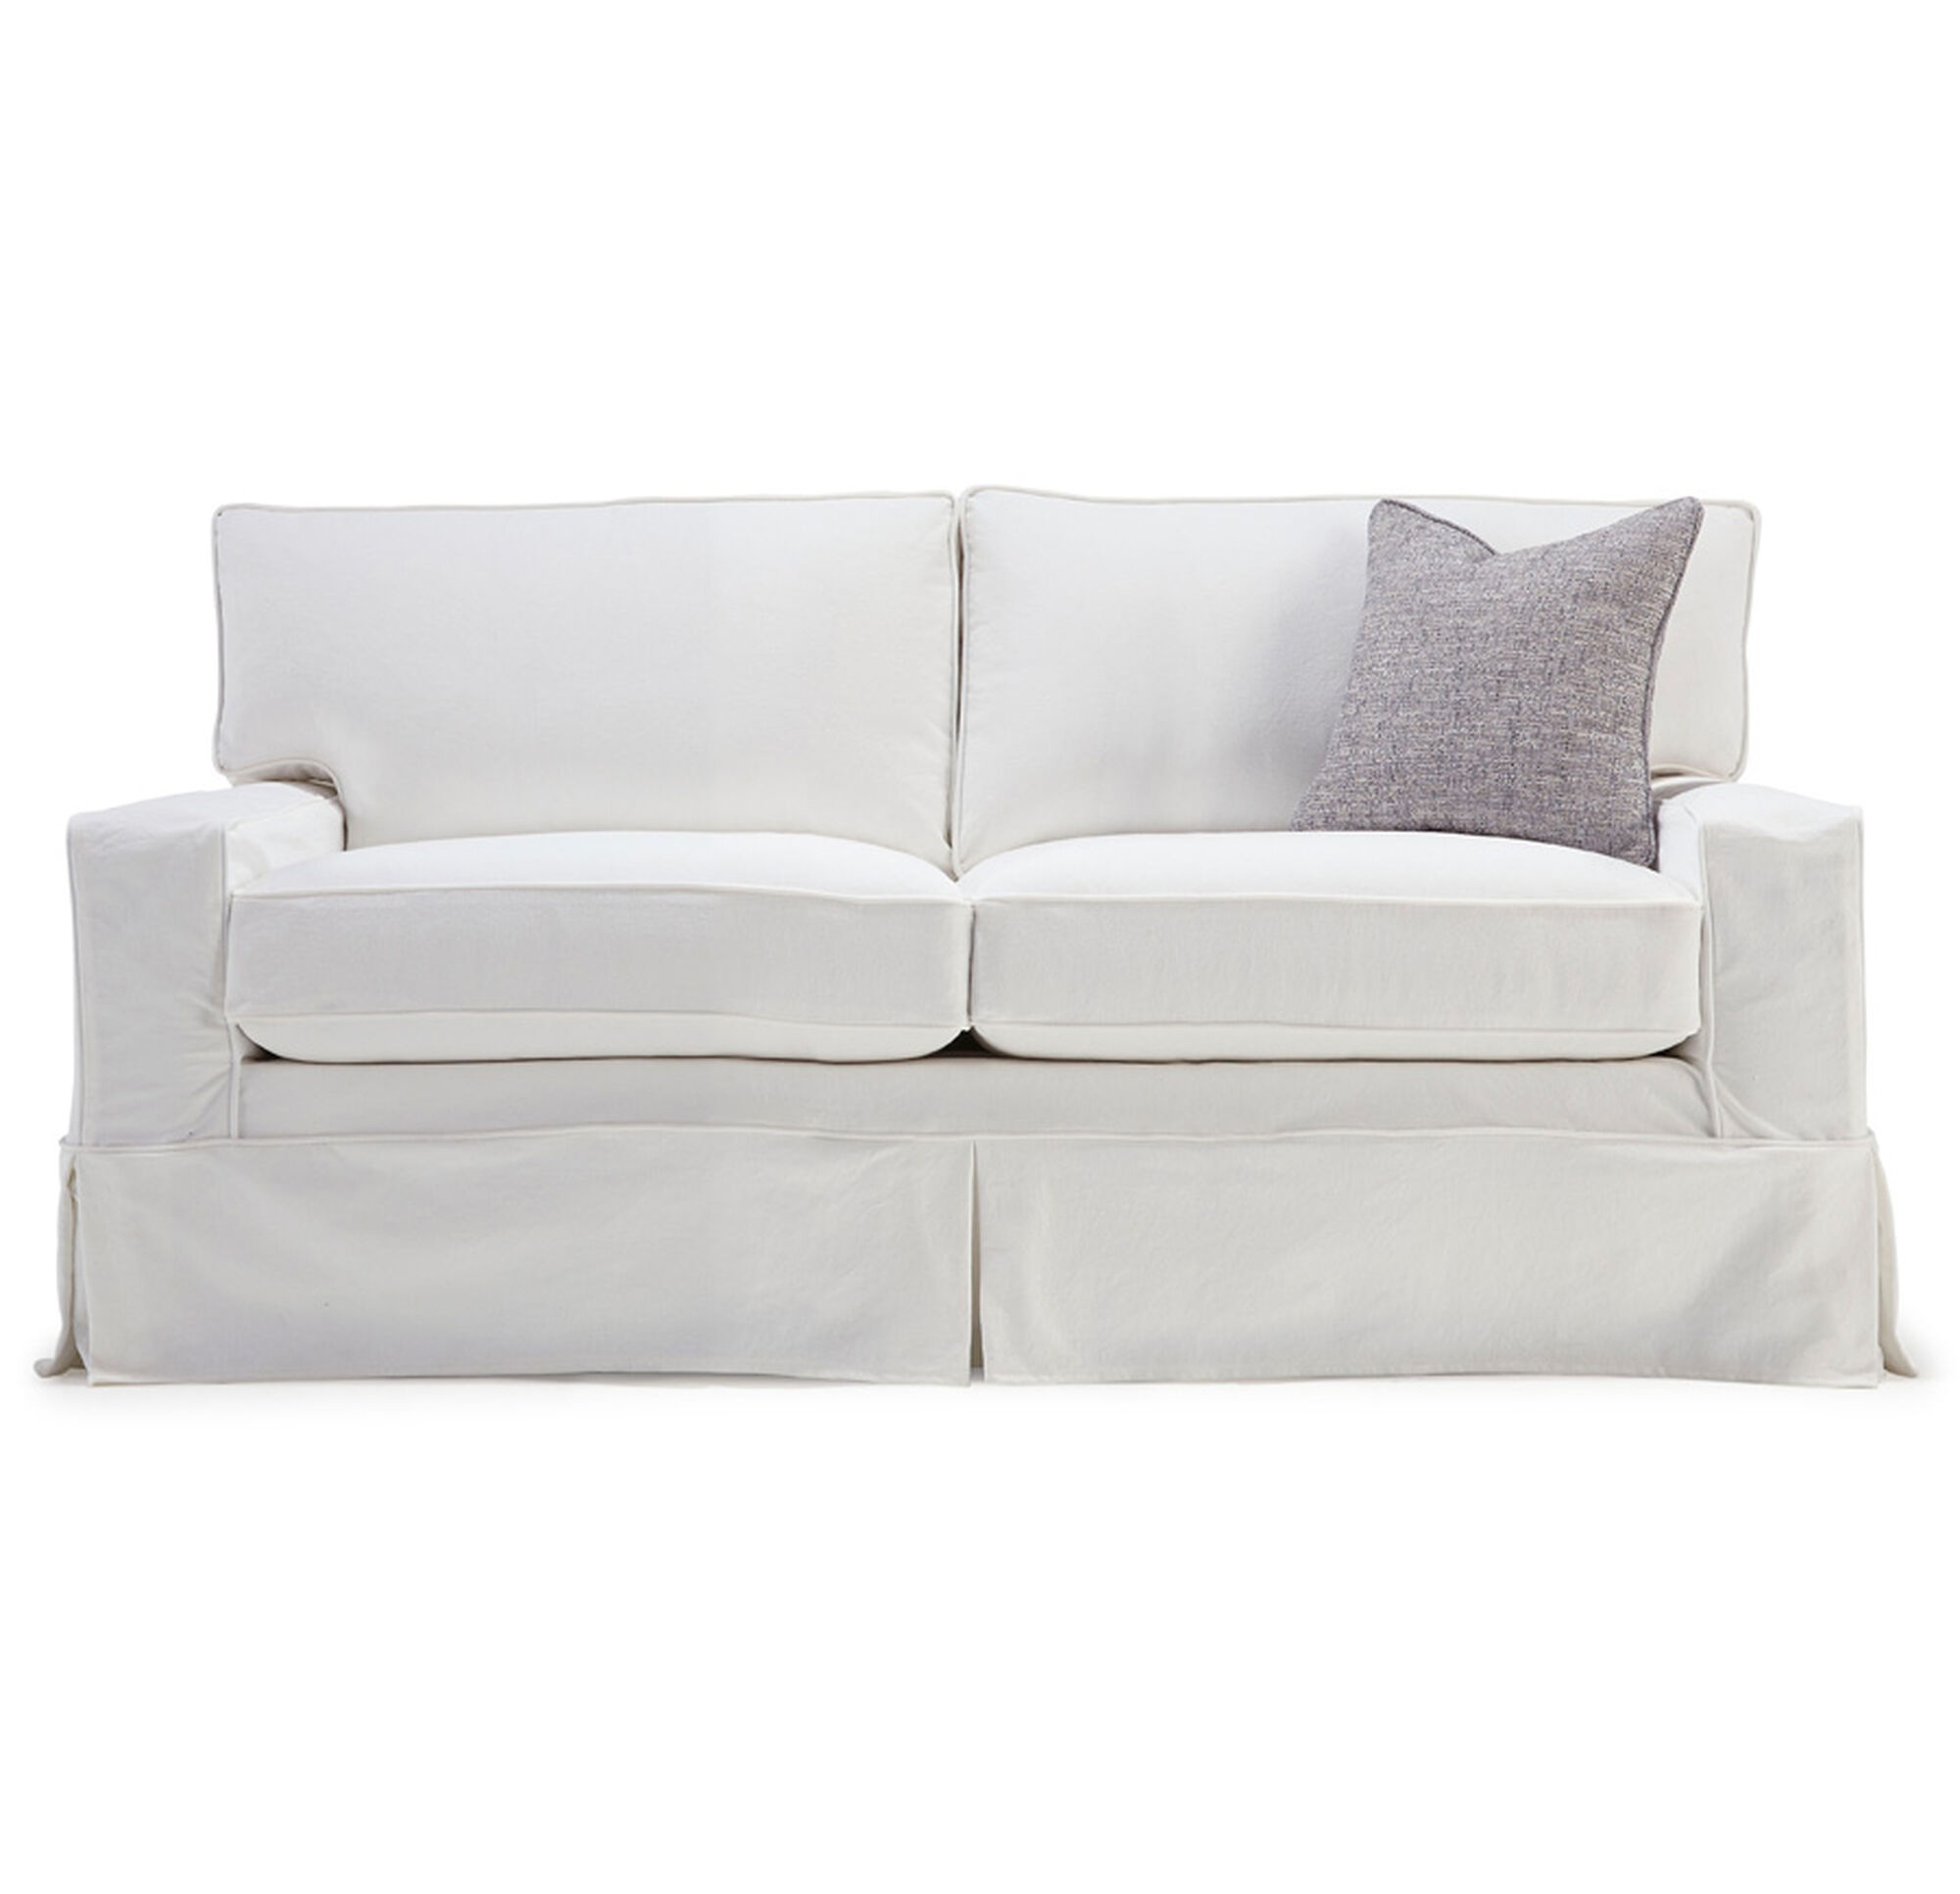 Slipcovers For Sofas And Loveseats Sure Fit Authentic